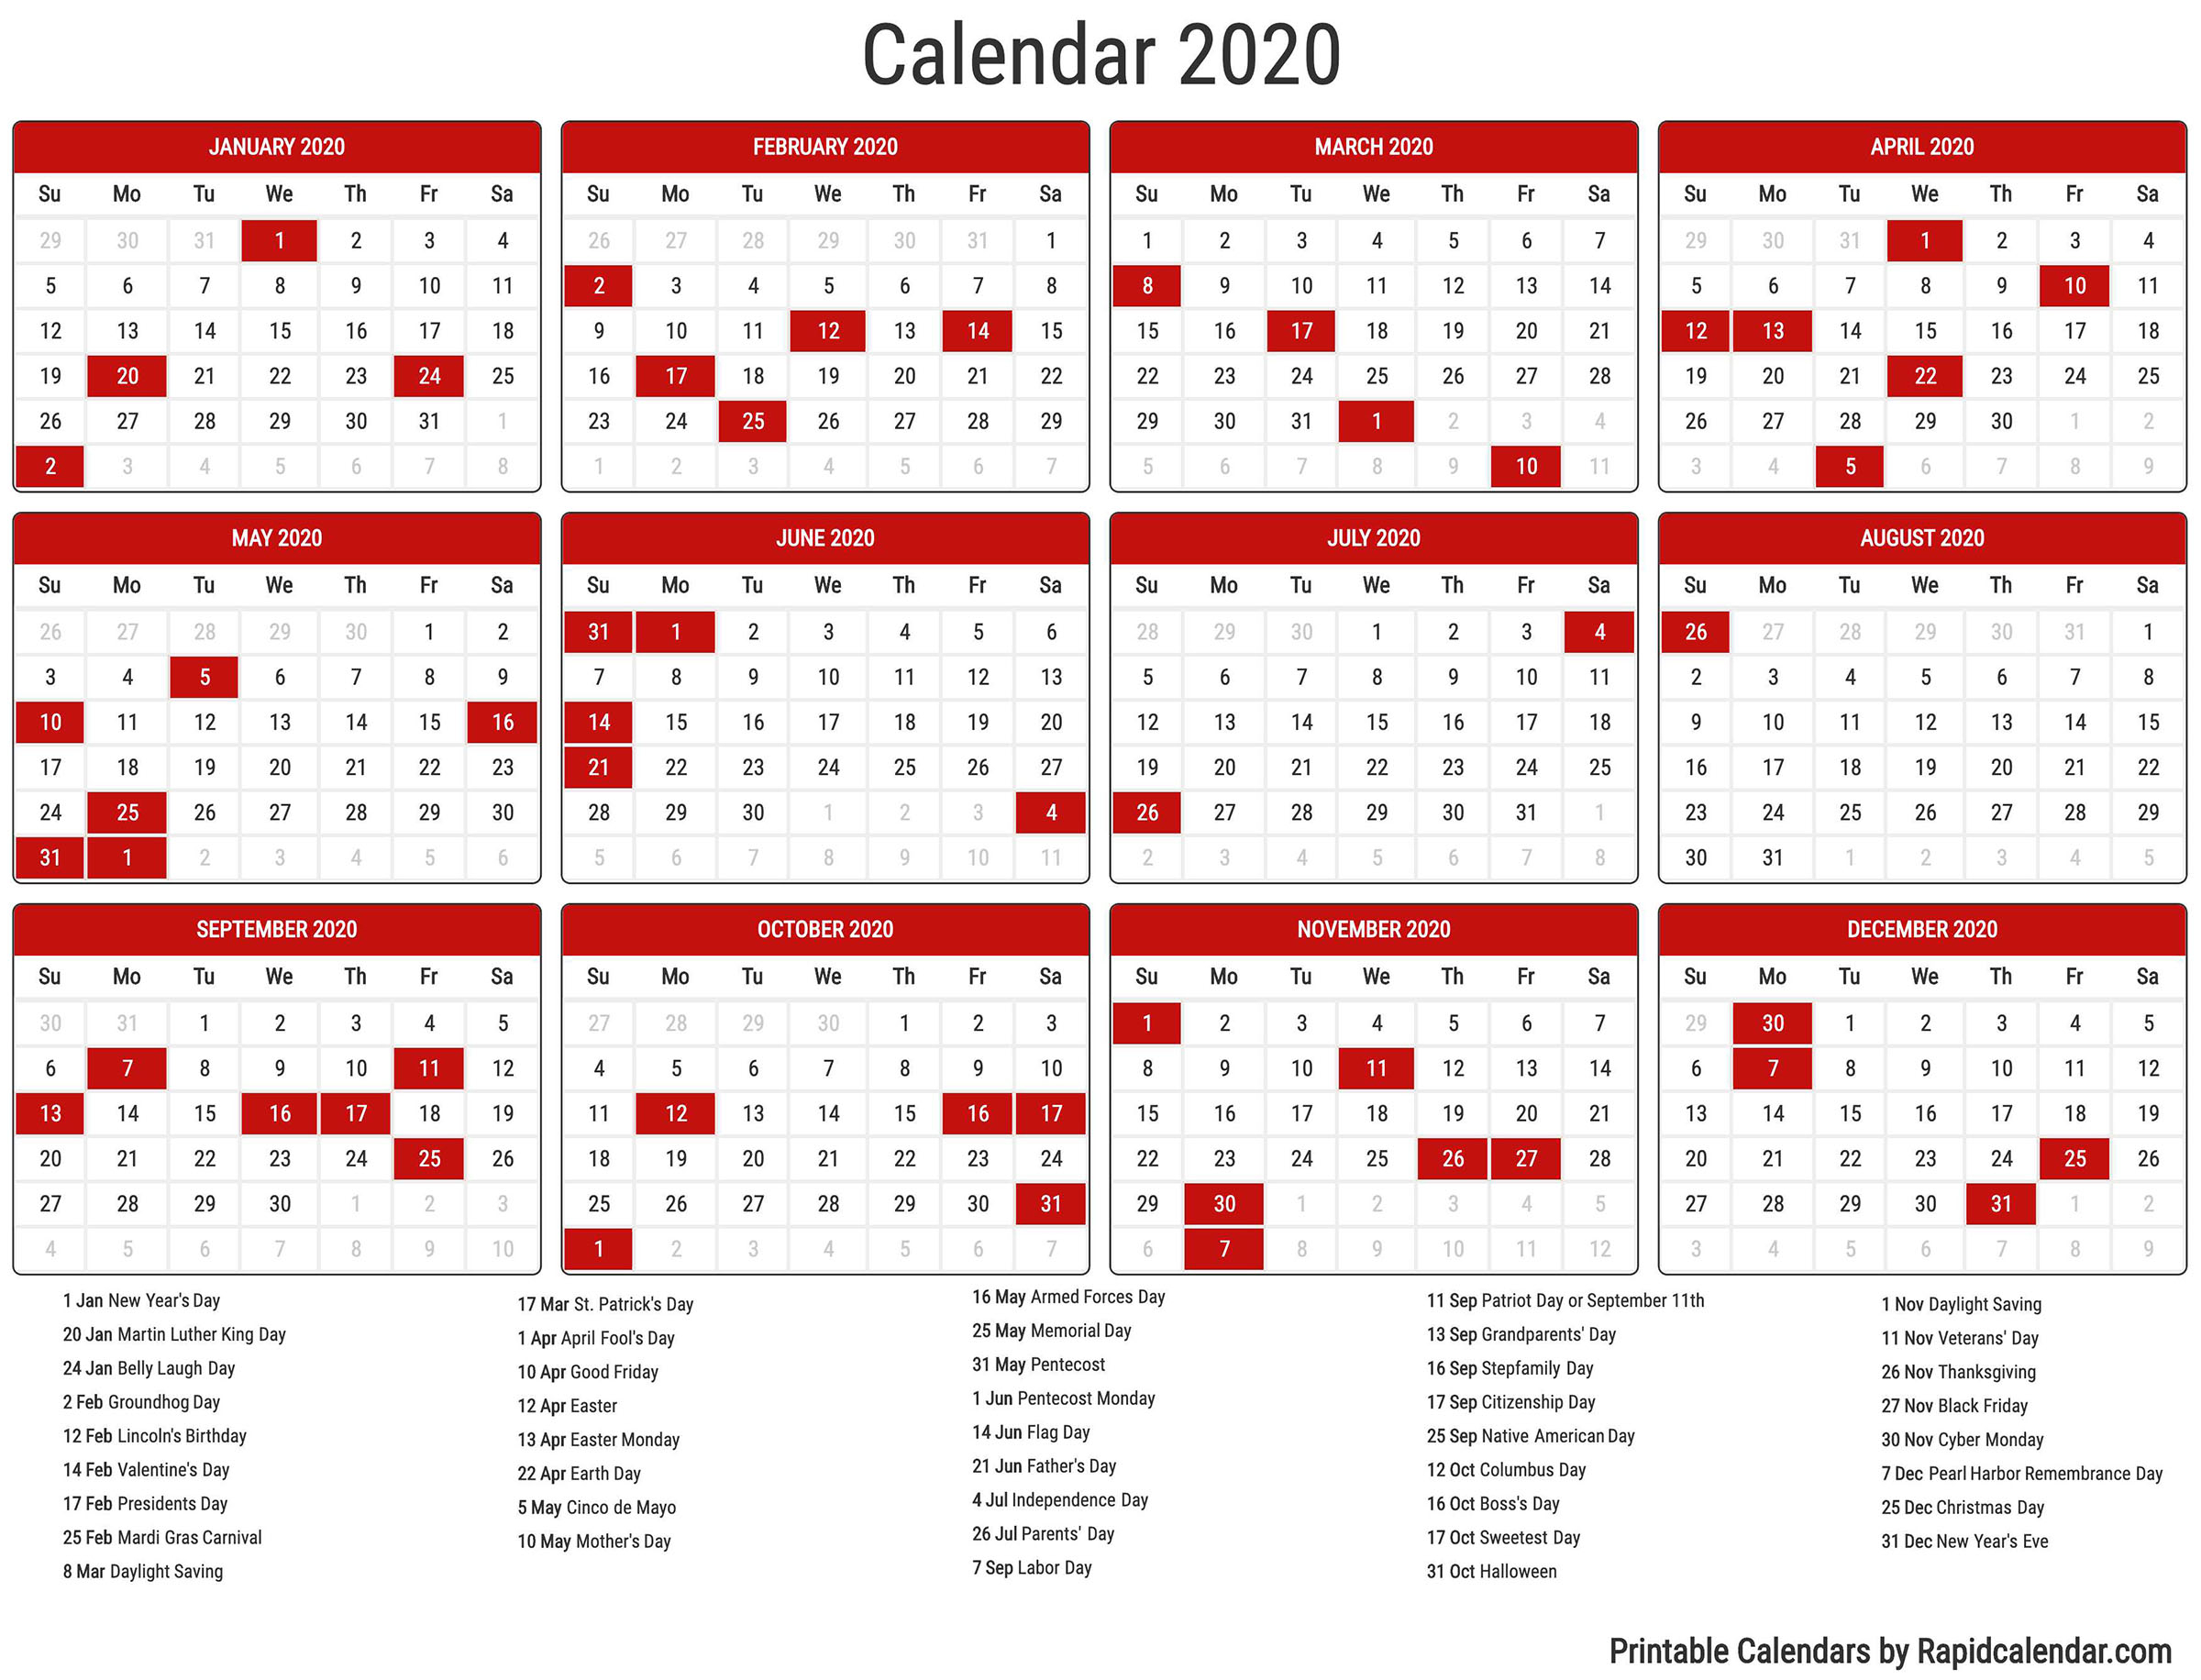 2020 Calendar - Rapid Calendar throughout Festive Printable Calendar 2020